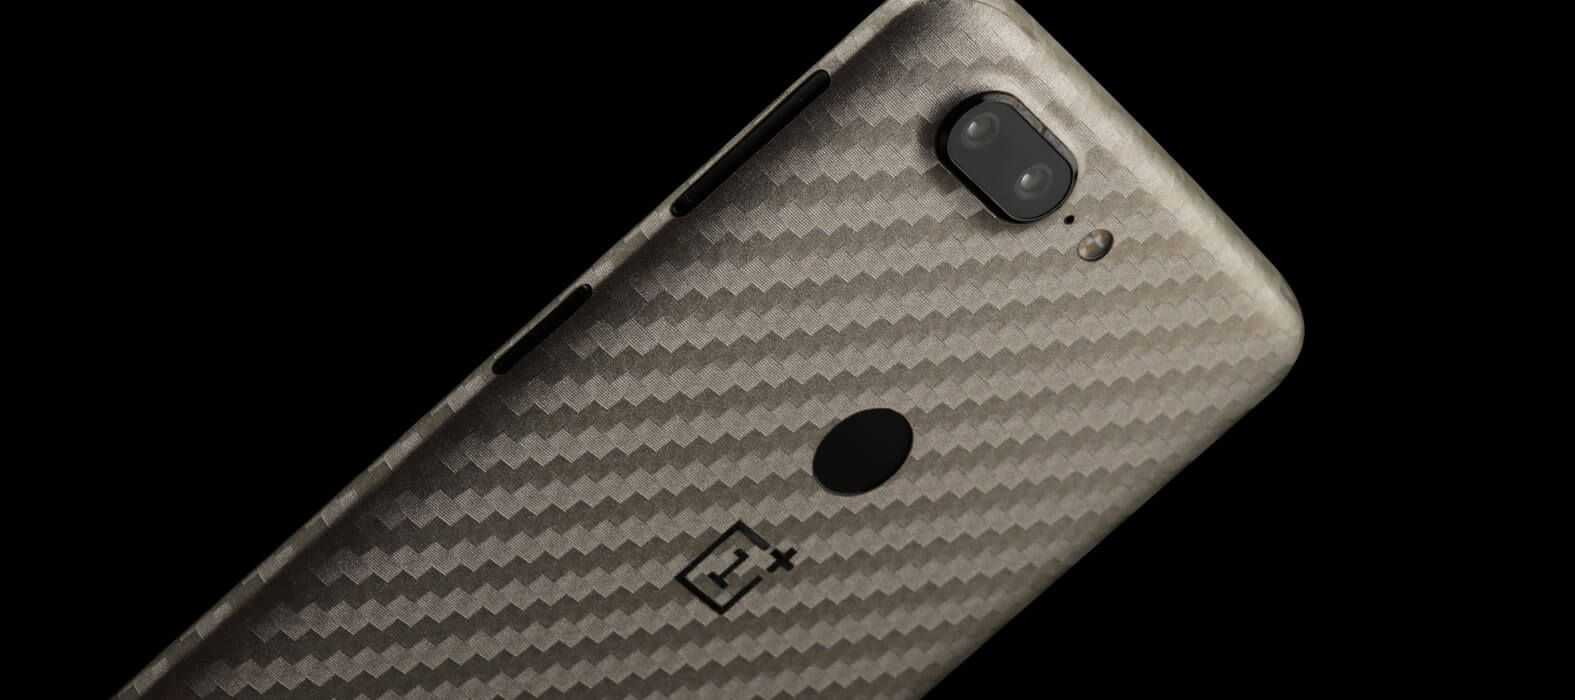 OnePlus 5T Skins, Decals, Wraps - Pewter Carbon fiber